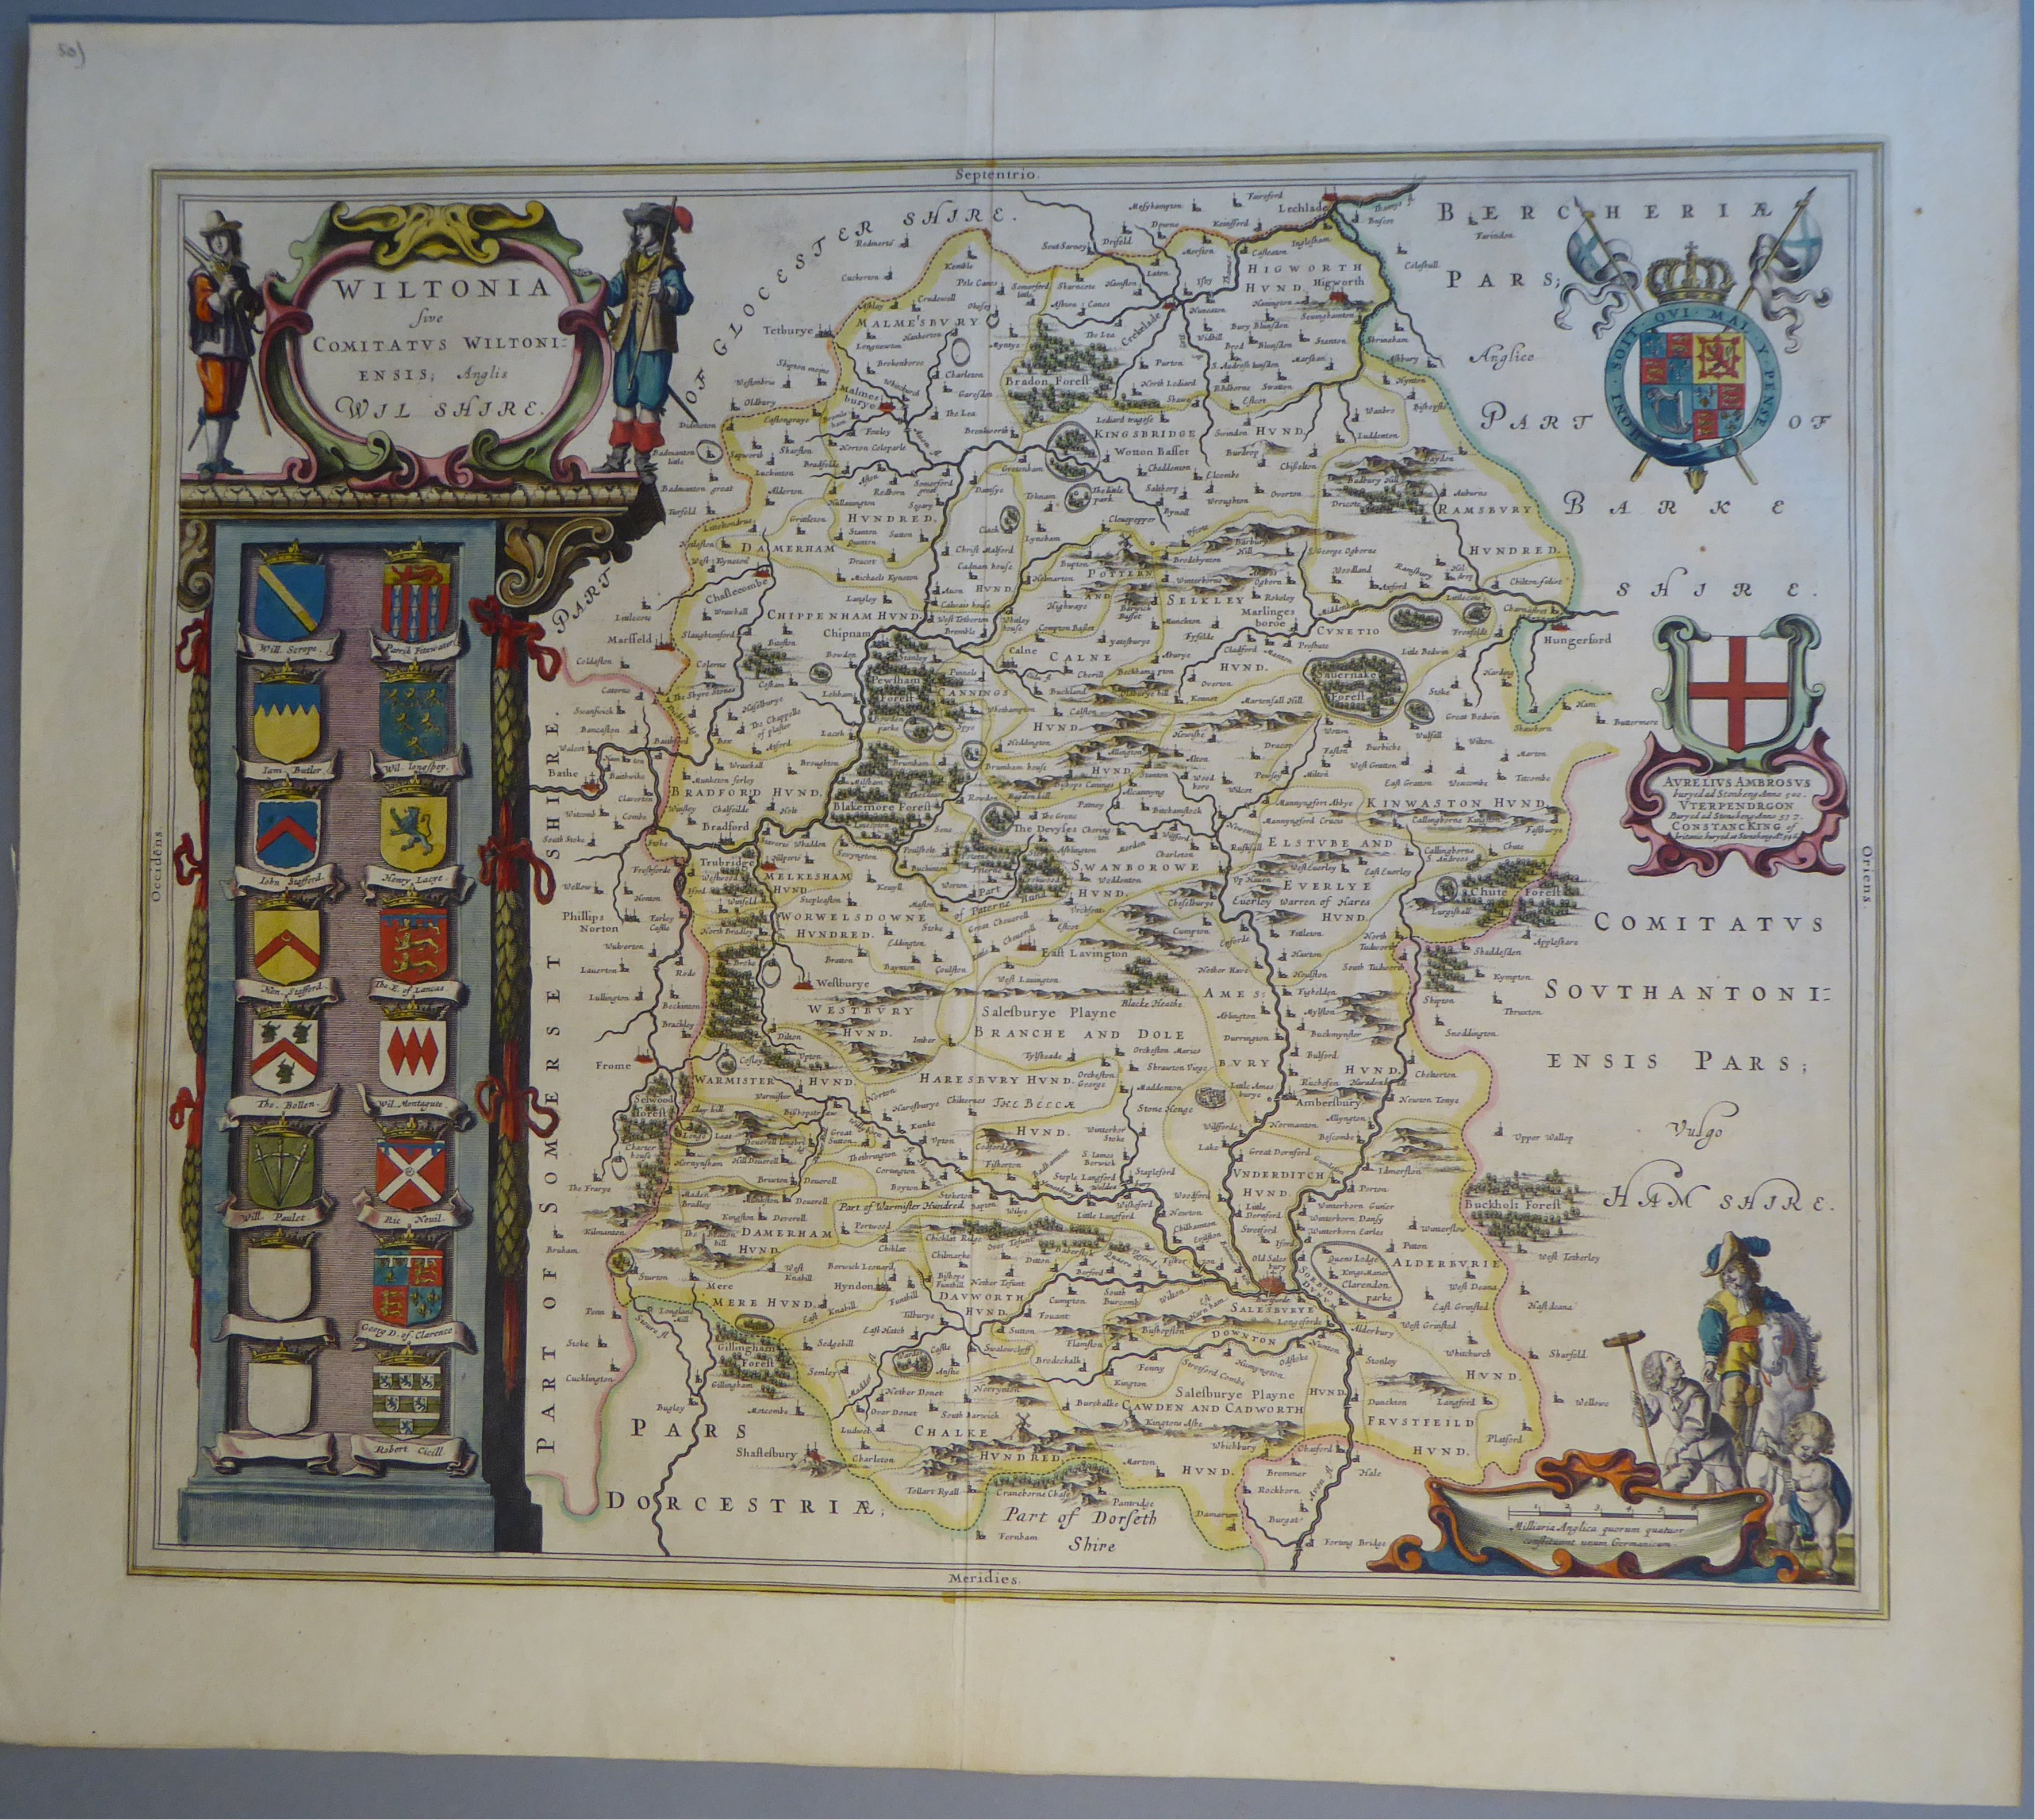 Lot 56 - A C17th hand coloured copper engraved map of Wiltshire by William Blaeu, c1645